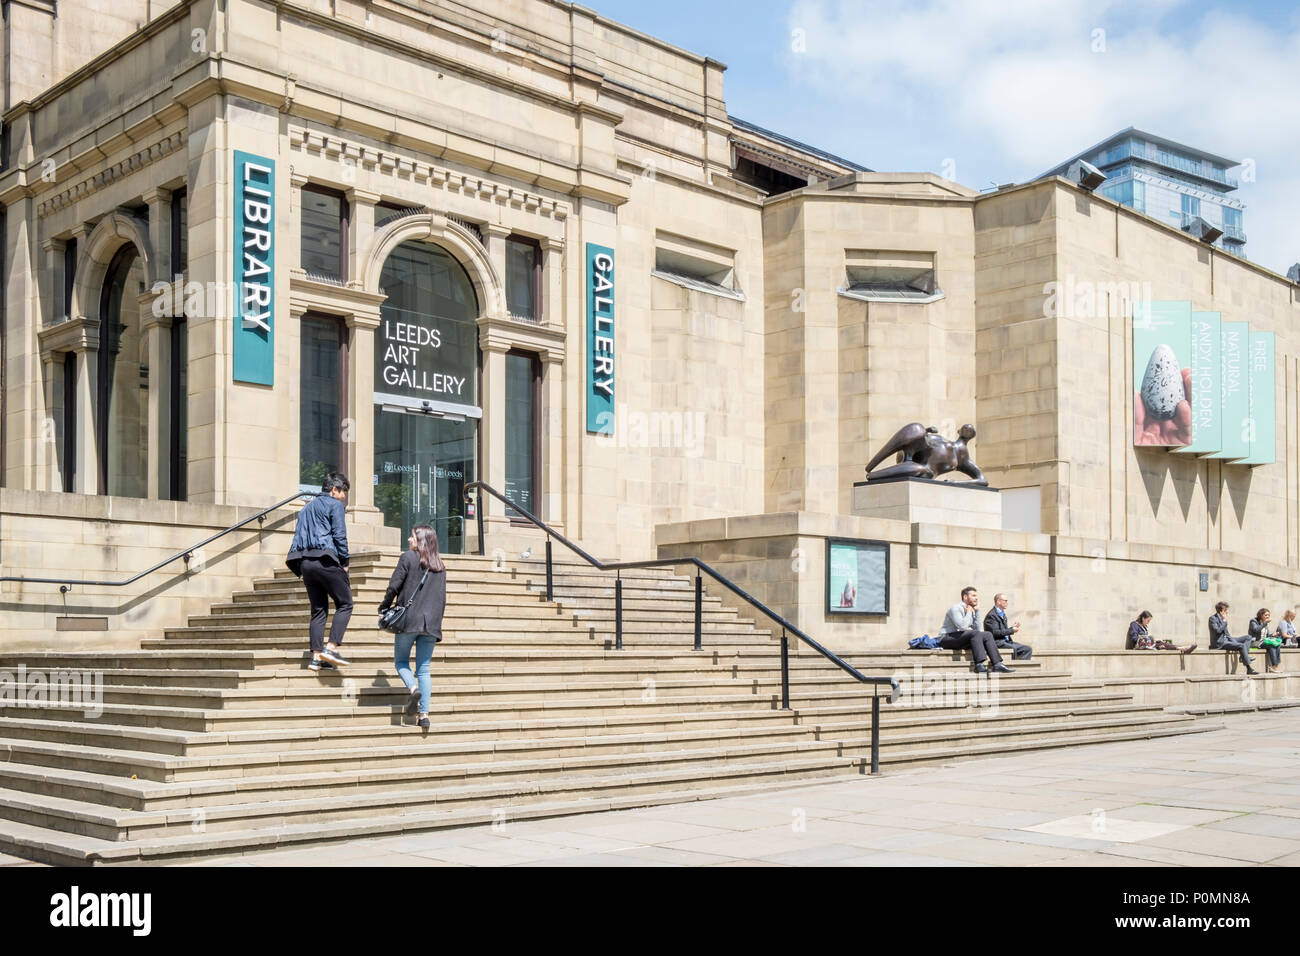 Leeds Central Library and Leeds Art Gallery, Leeds, West Yorkshire, England, UK - Stock Image